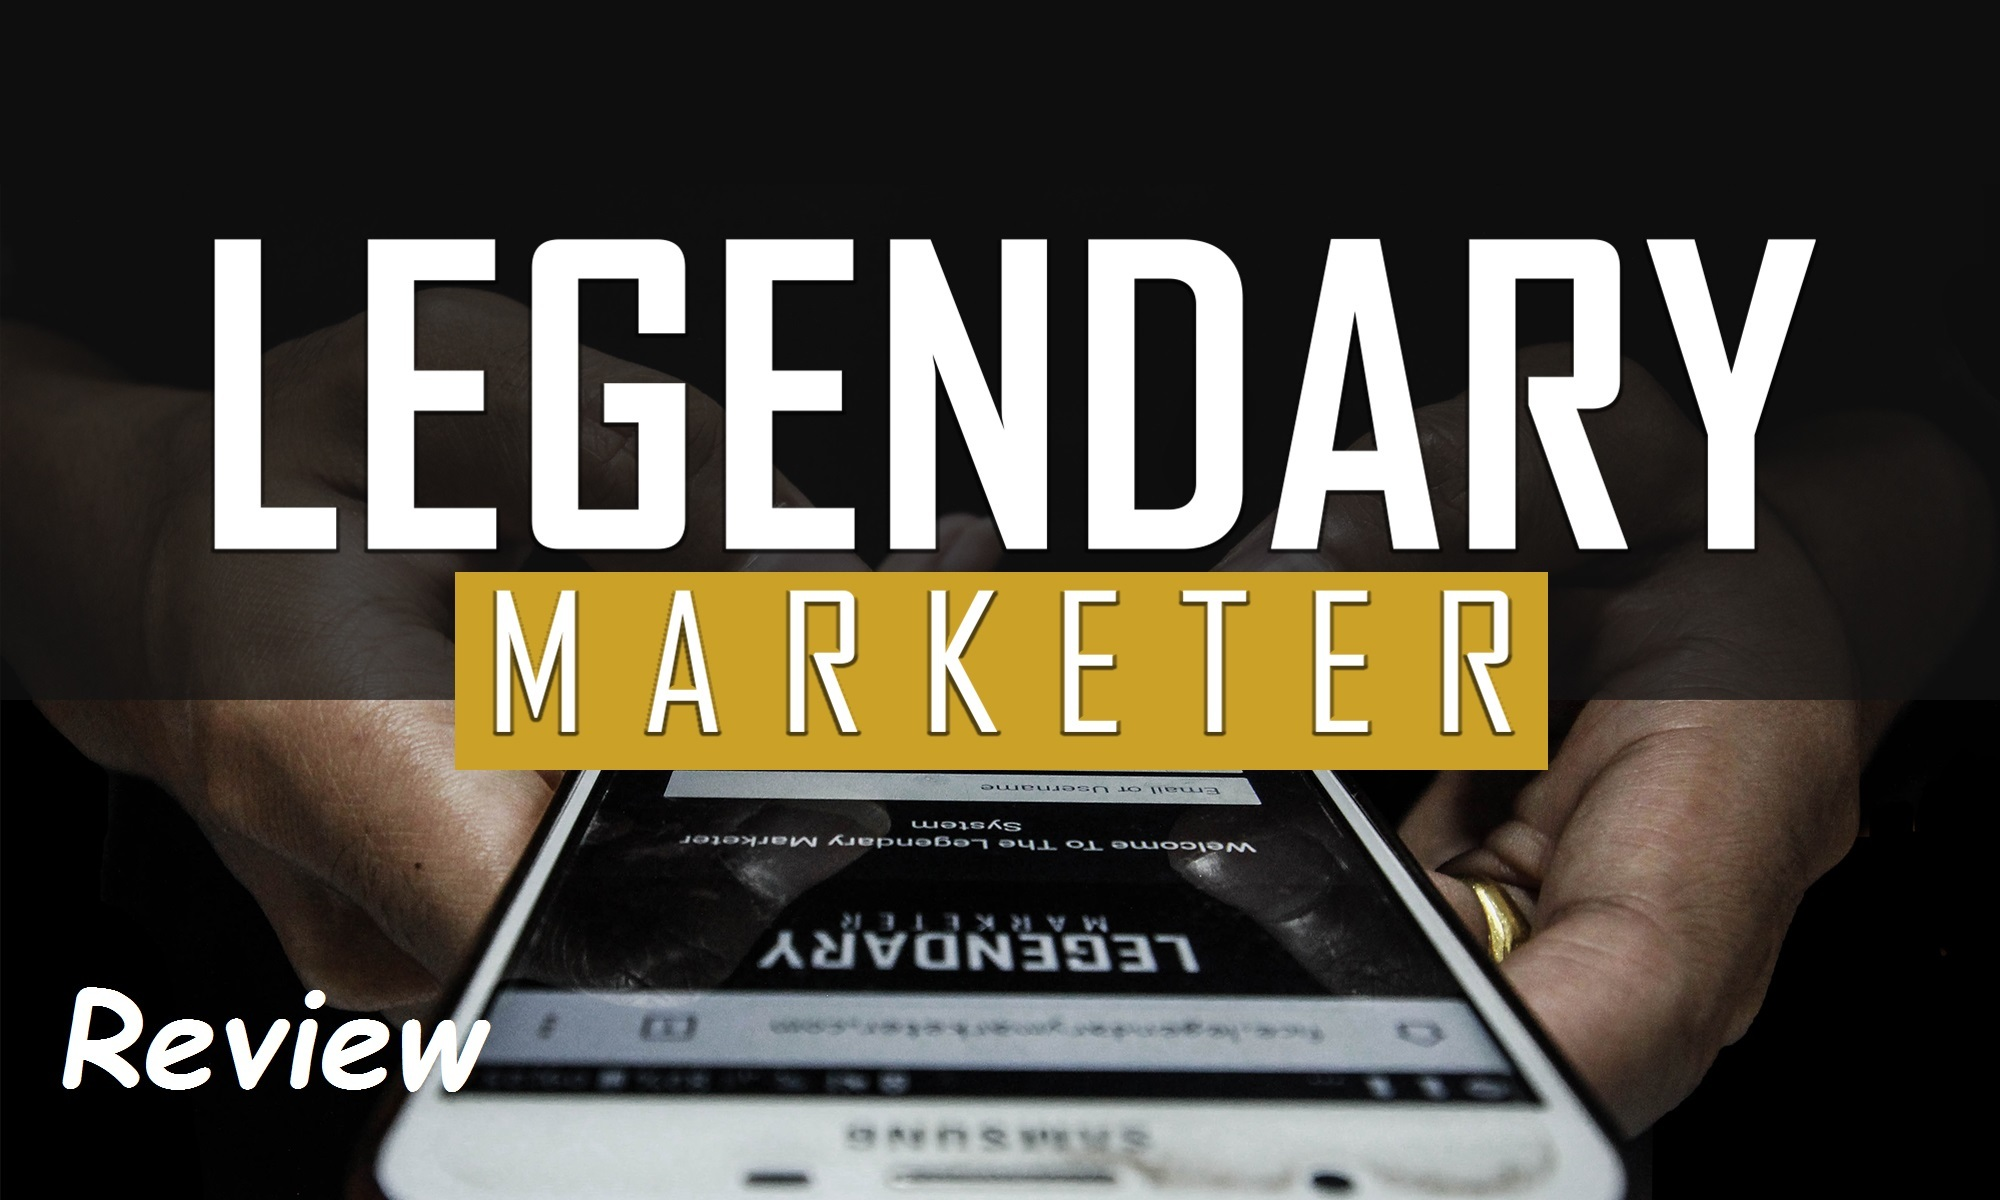 Legendary Marketer  Under 700